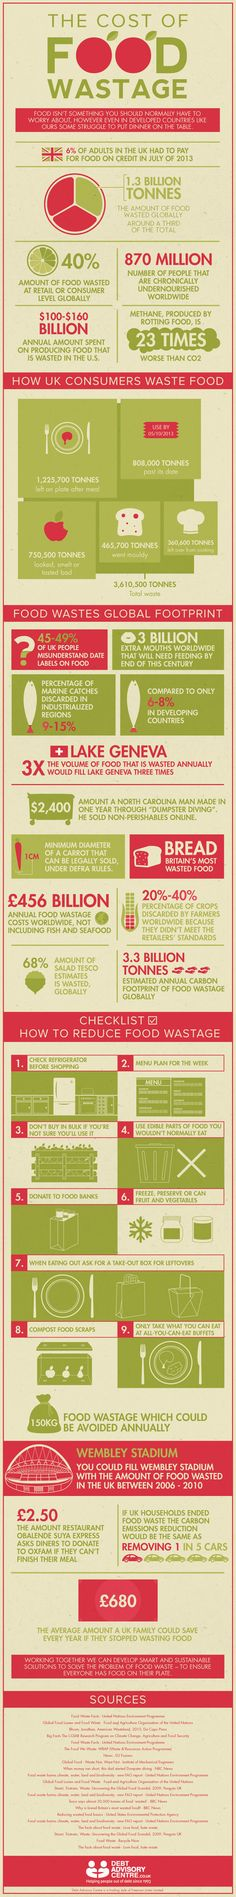 The Cost of Food Wastage Infographic...the holidays are the perfect time to look at this...